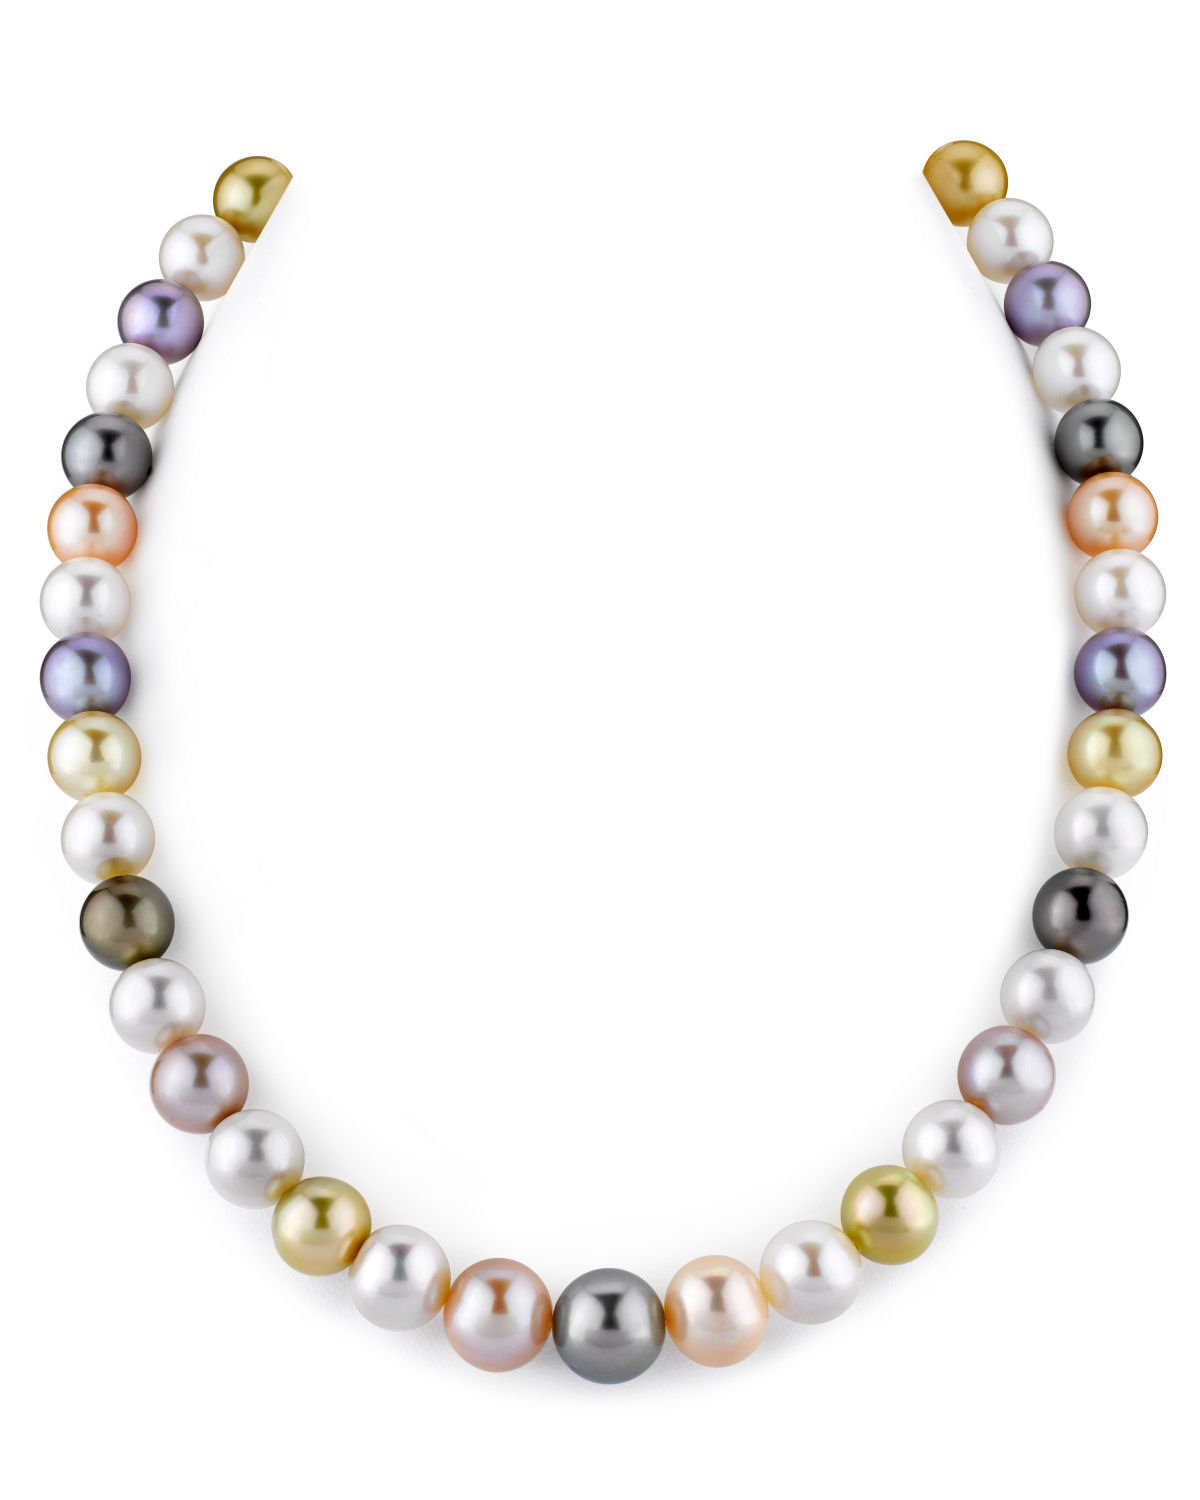 THE PEARL SOURCE 14K Gold 9-11 Round Genuine Multicolor South Sea Cultured Pearl Necklace in 17'' Princess Length for Women